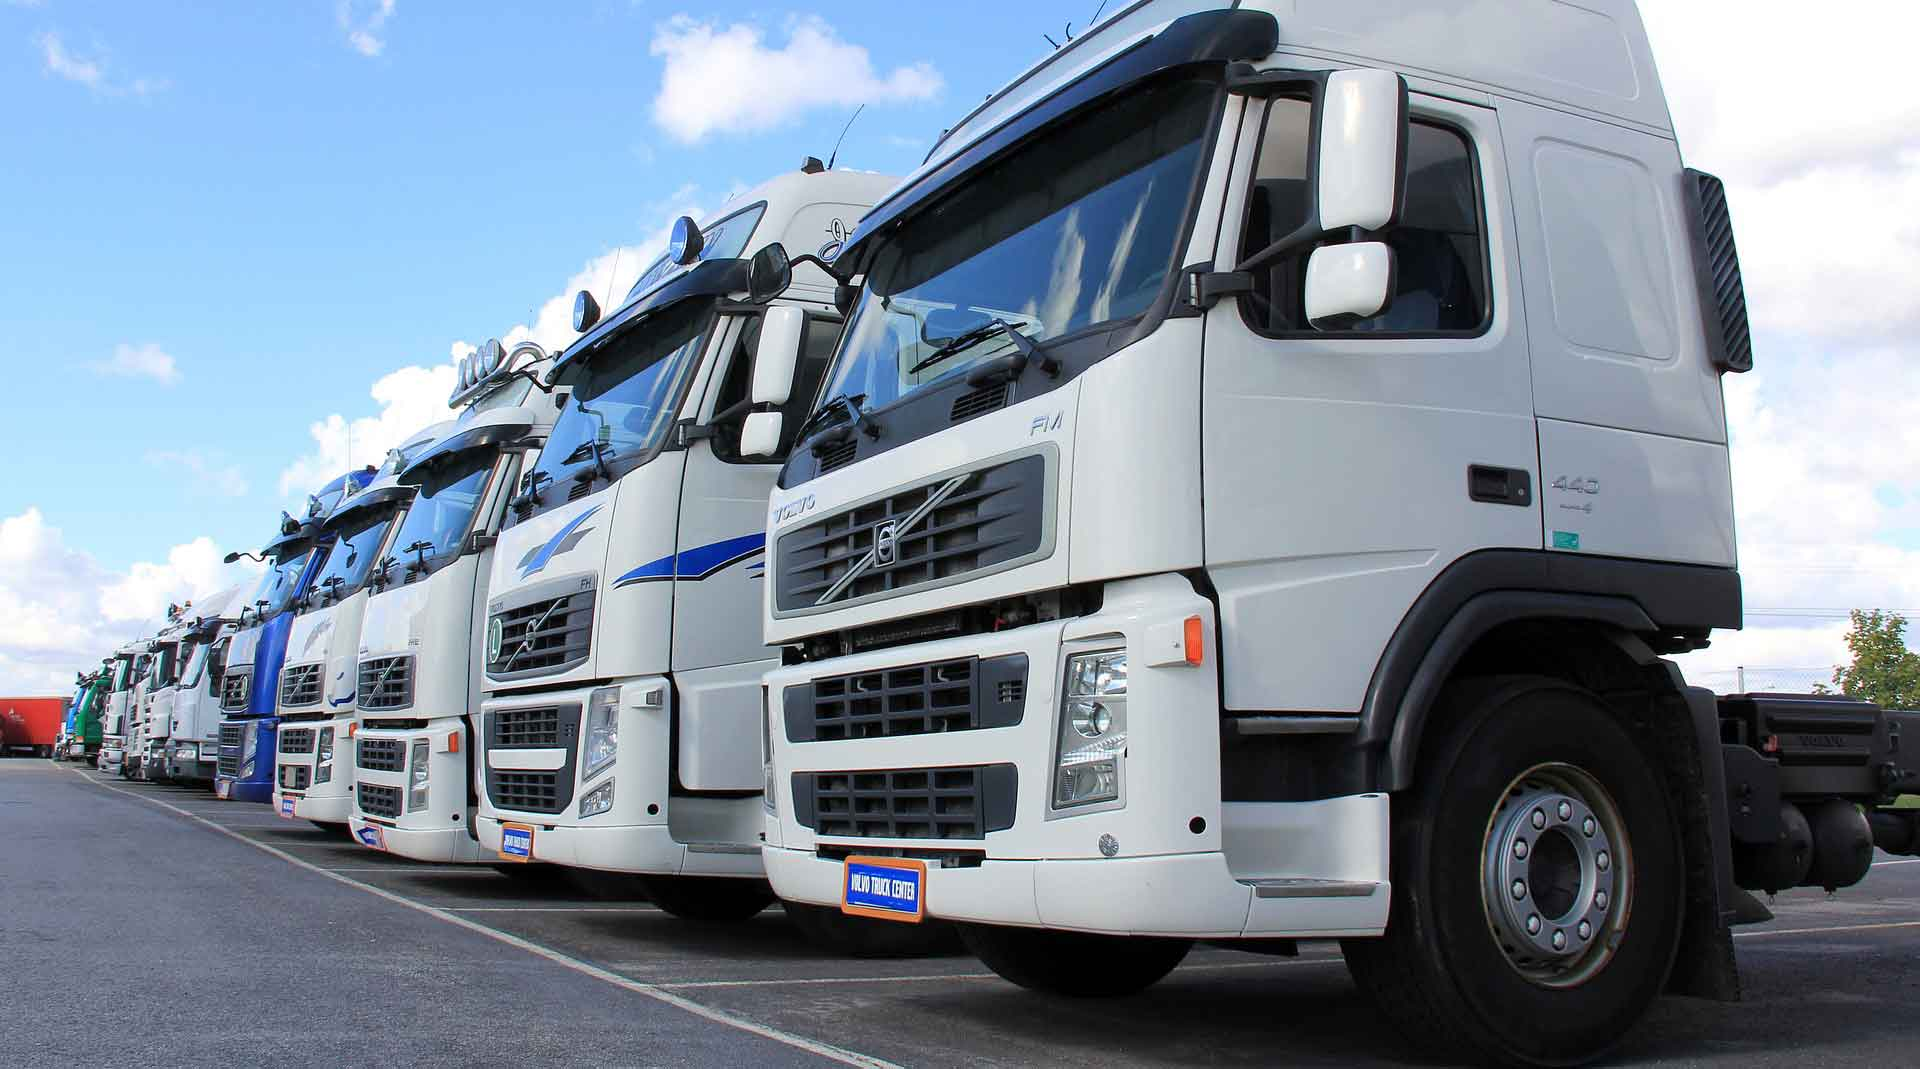 Transport Tax Services